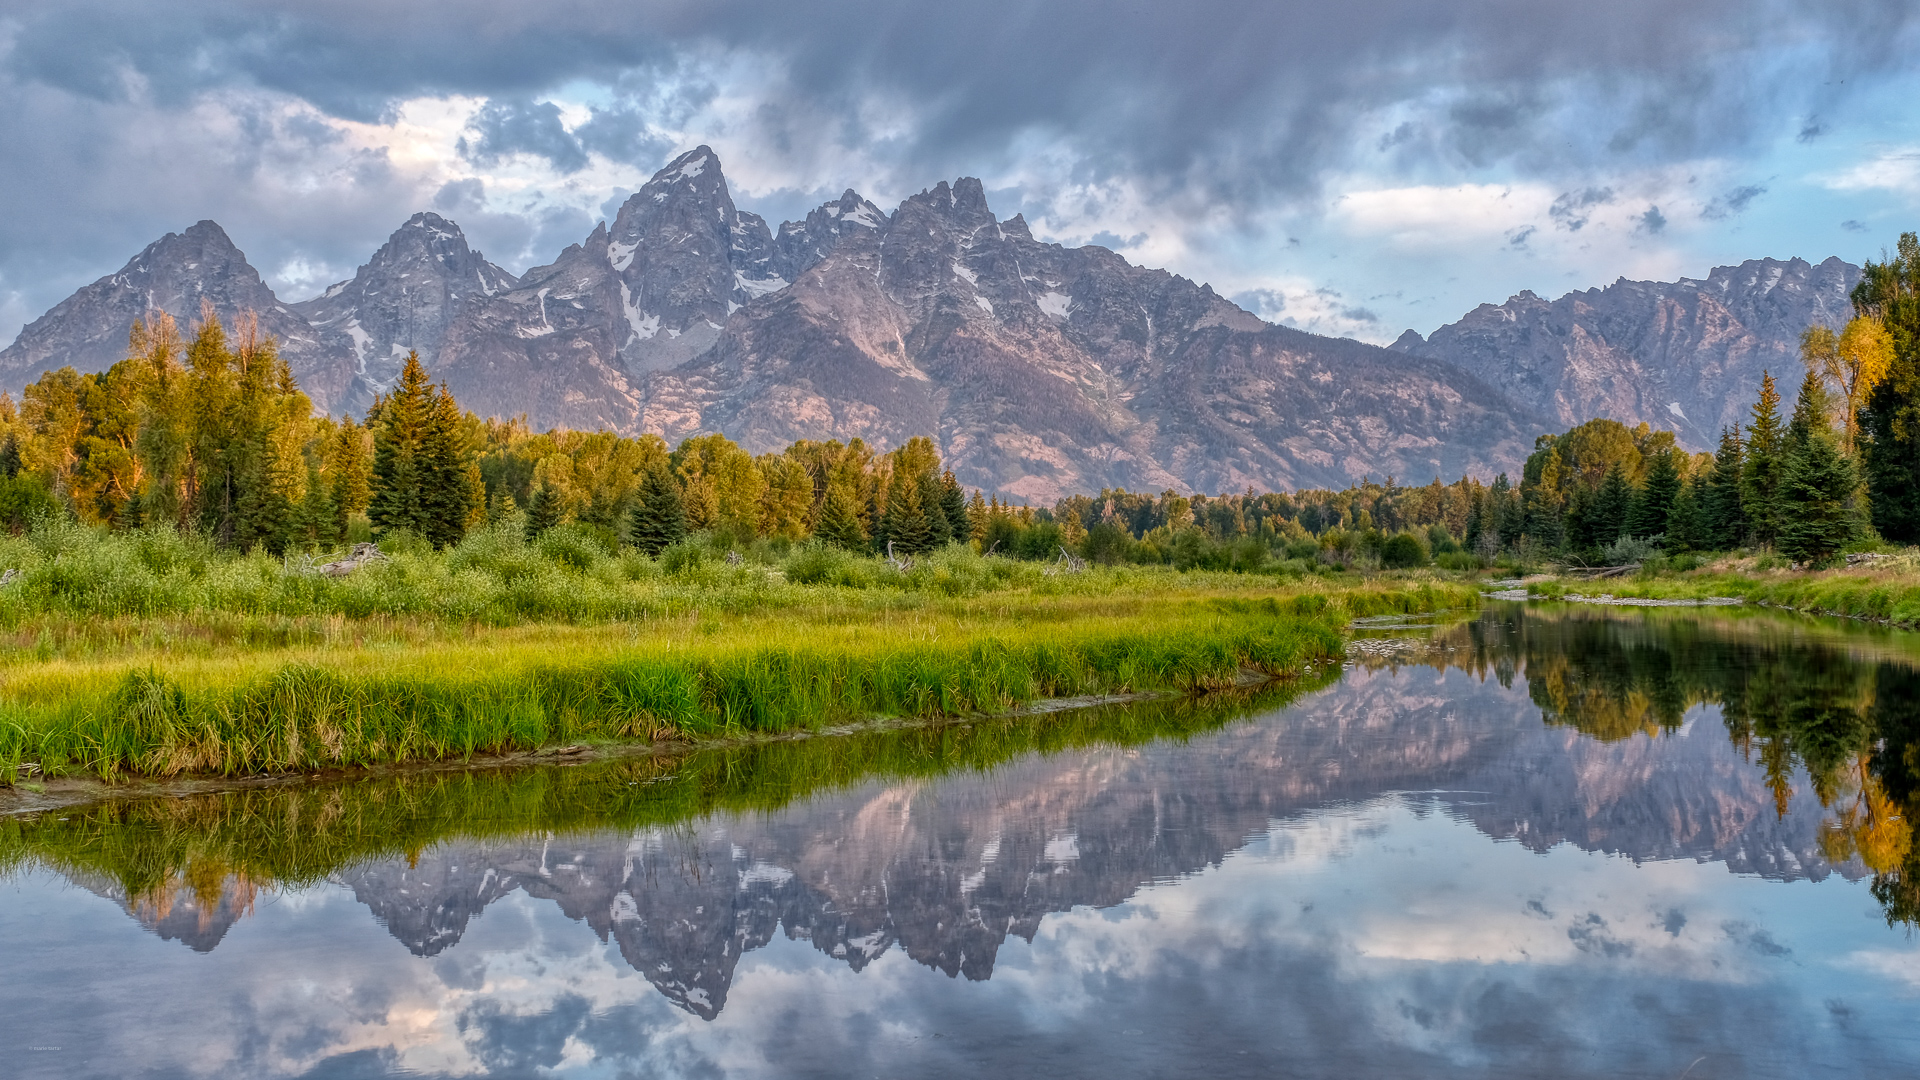 Grand teton panorama from Schwabacher's Landing